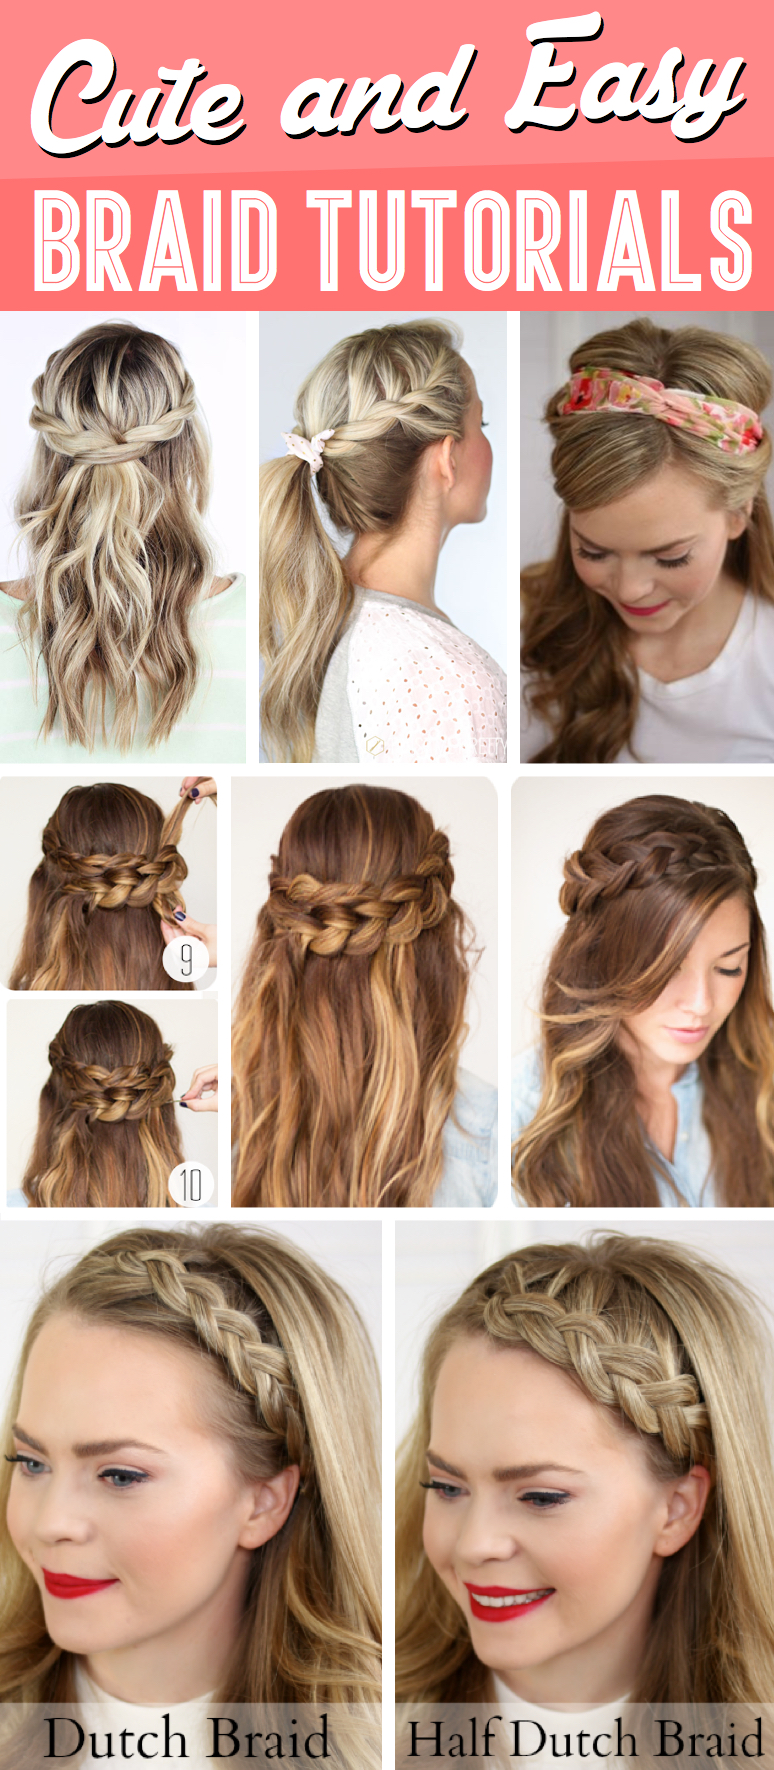 30 cute and easy braid tutorials that are perfect for any occasion 30 cute and easy braid tutorials that are perfect for any occasion solutioingenieria Image collections